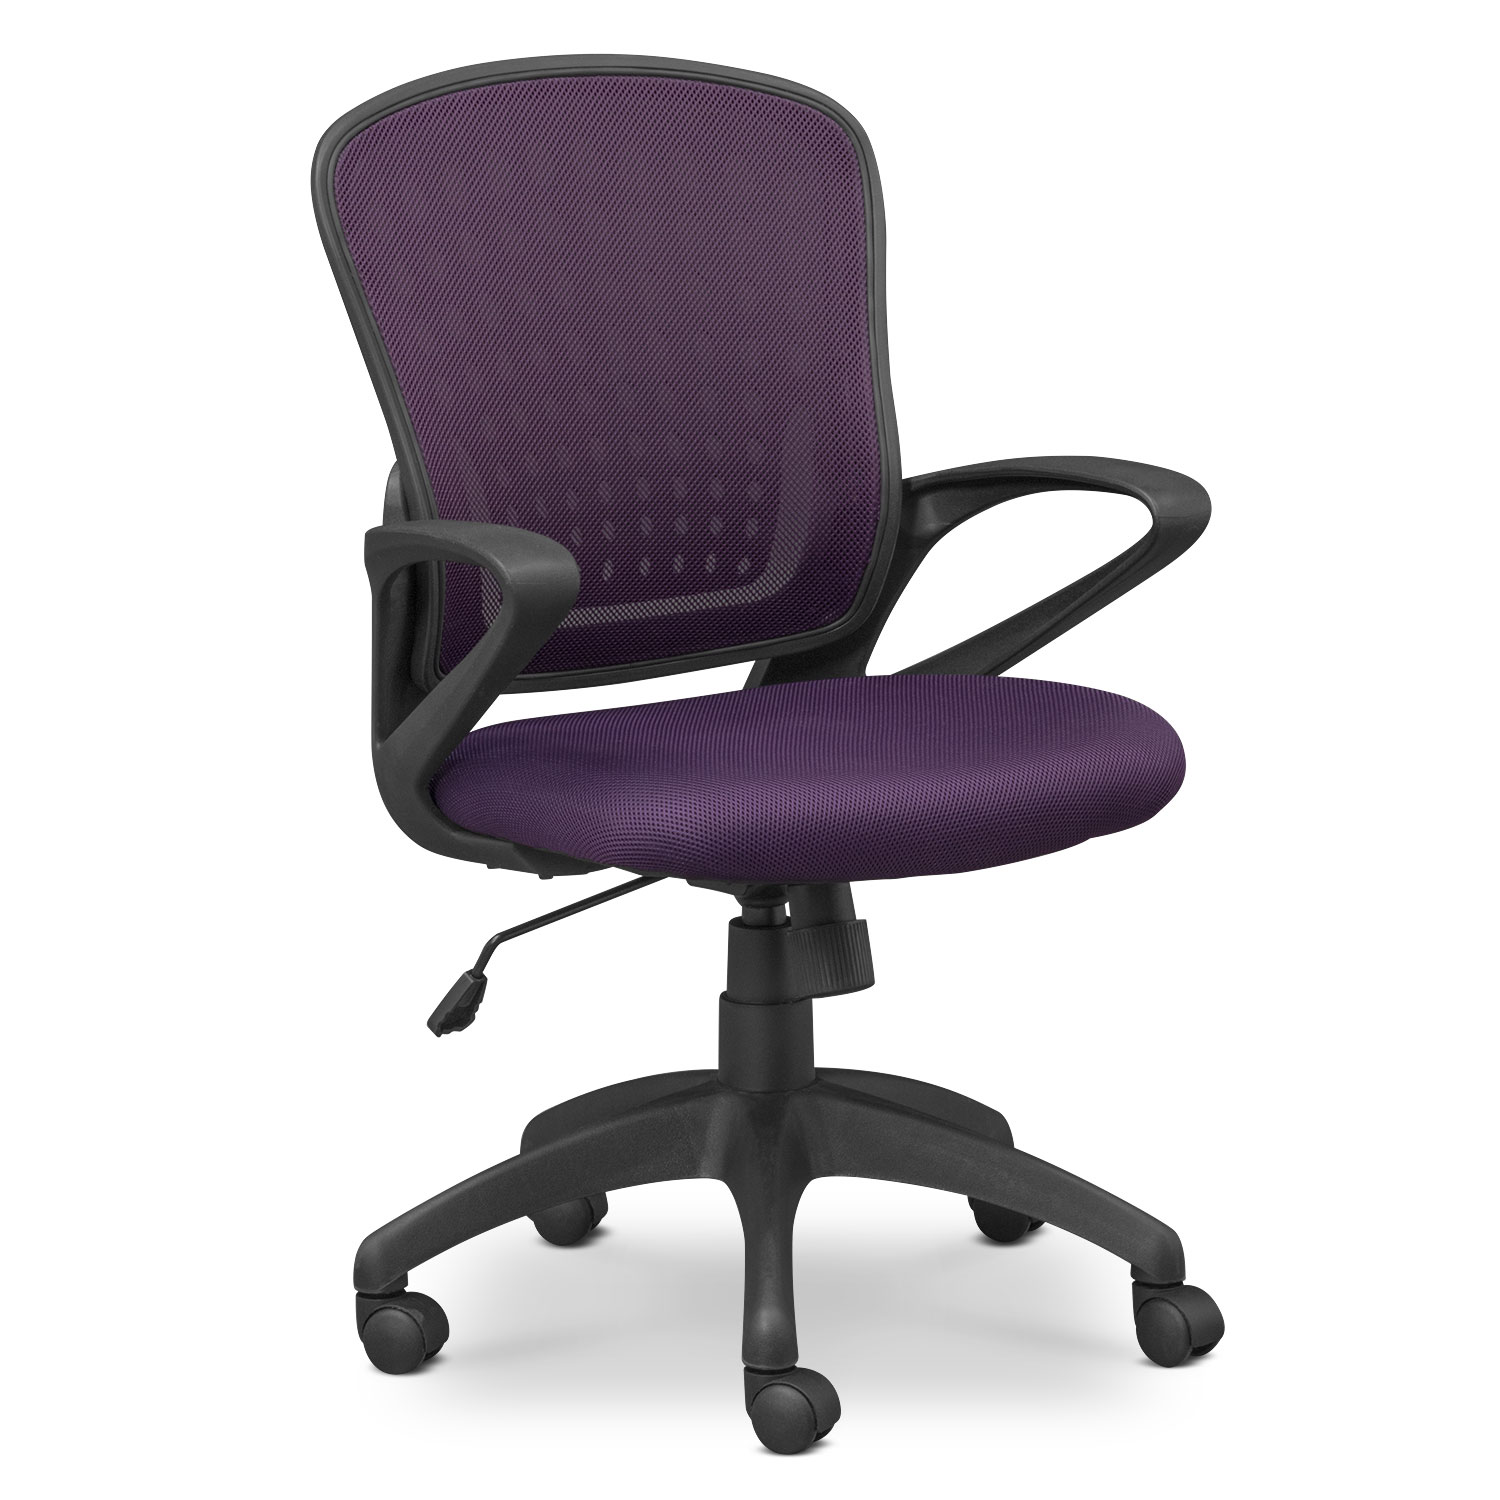 Home Office Furniture - Dexter Office Chair - Purple